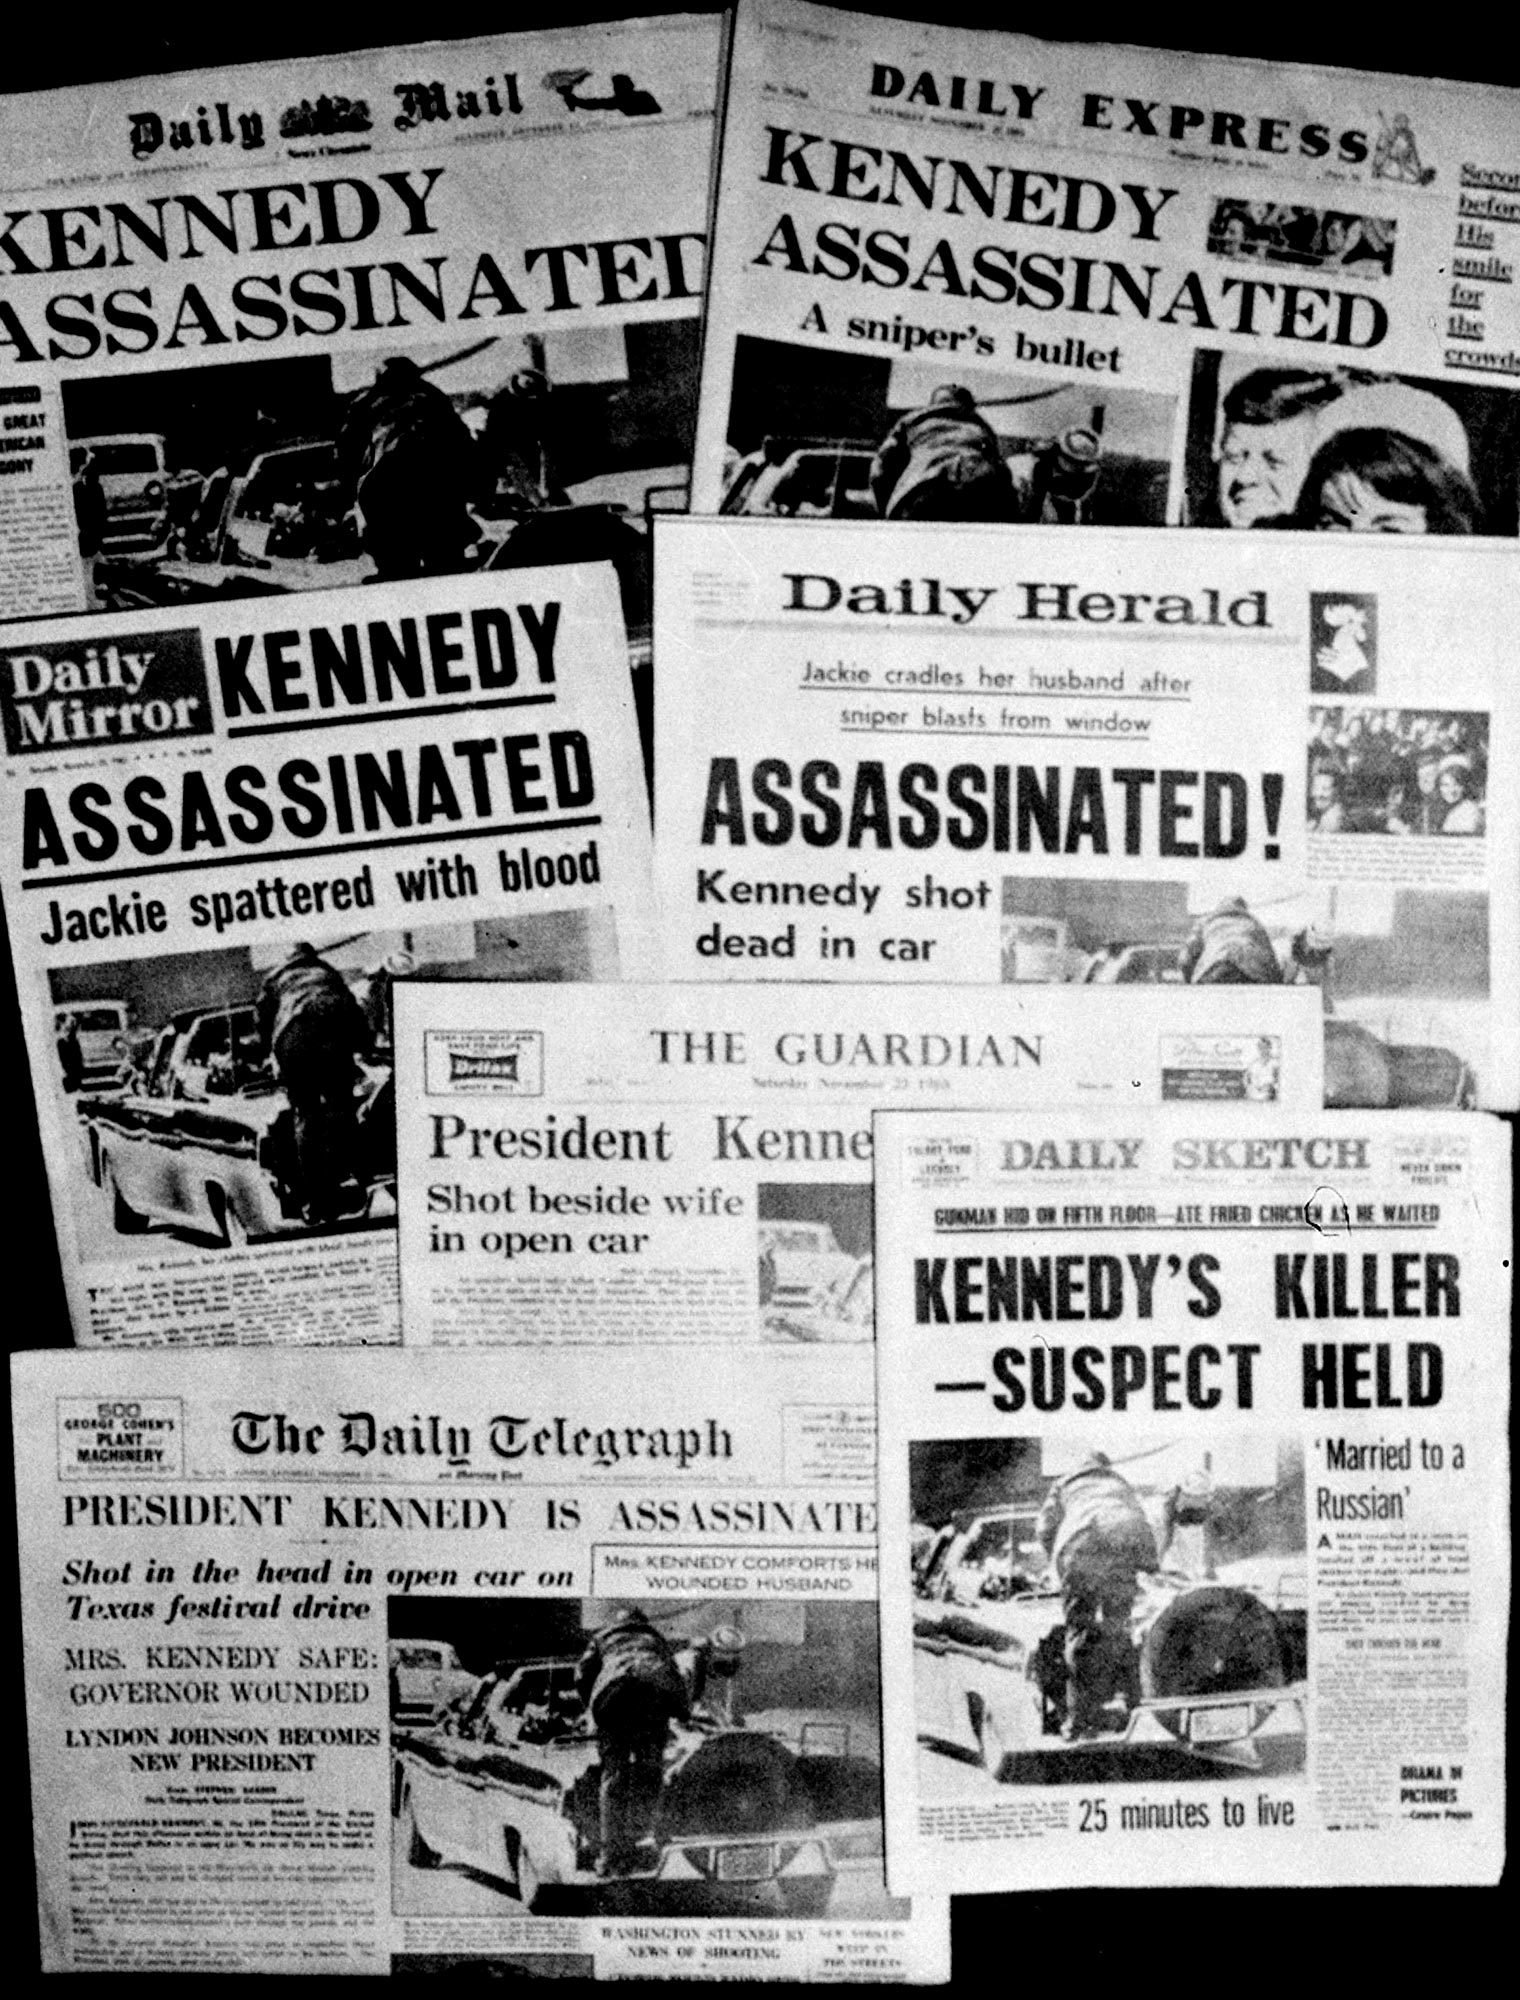 Newspaper headlines for JFK assassination